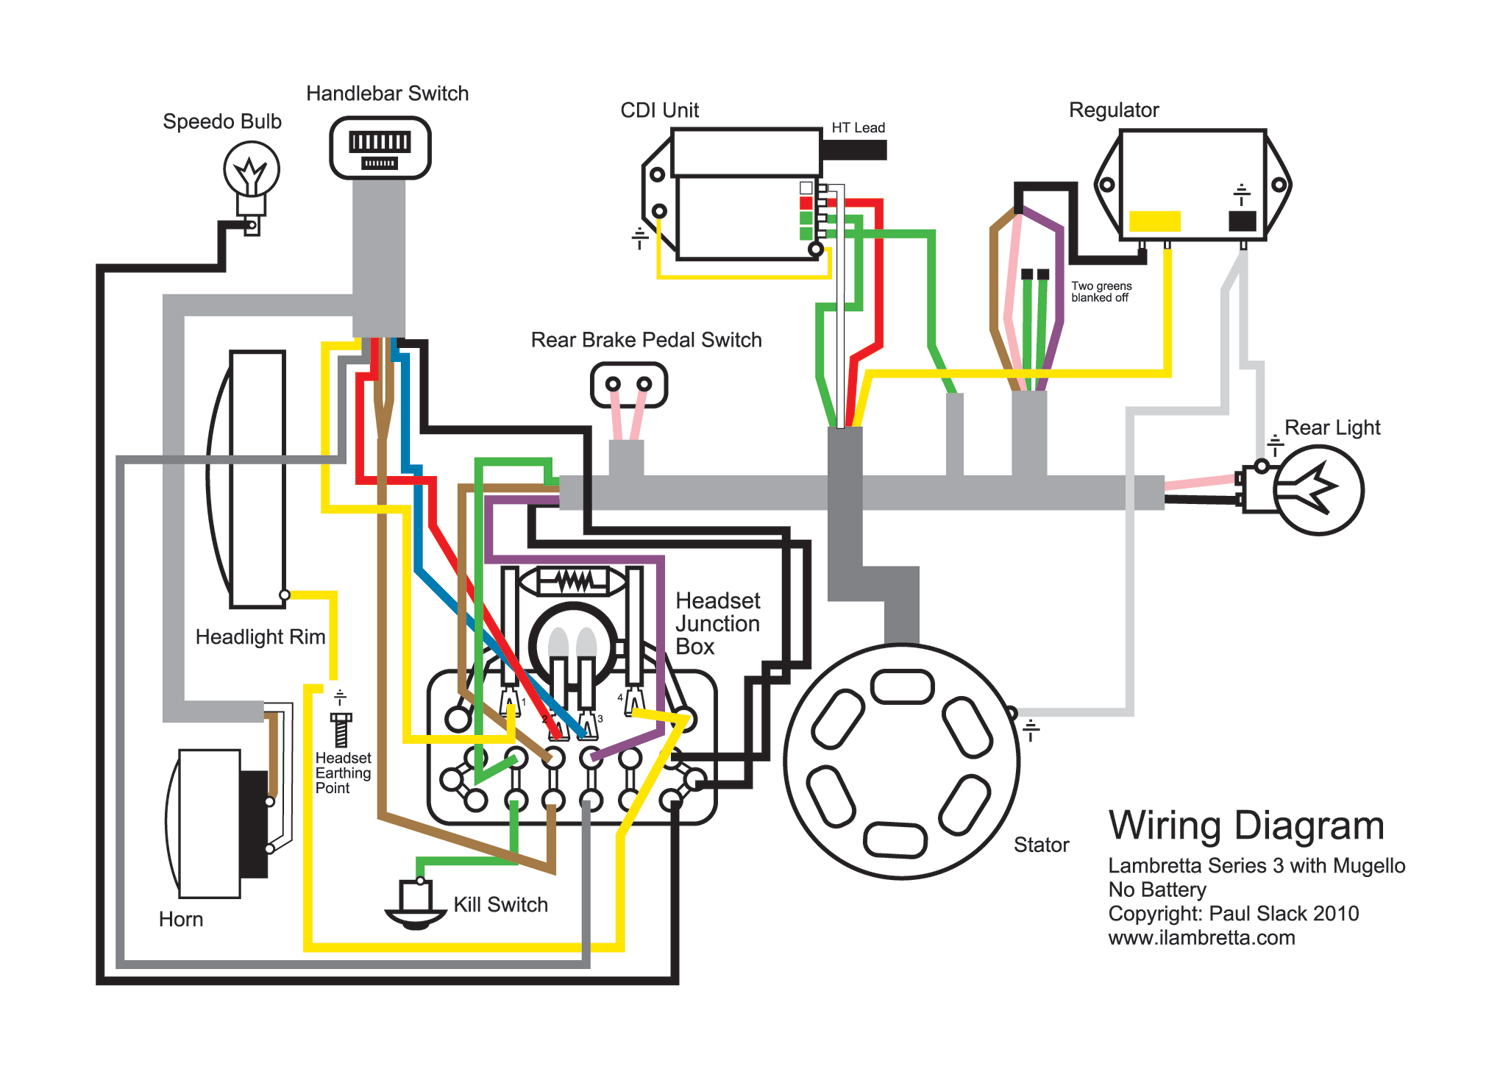 Li150 Wiring lambretta wiring diagram outlet wiring \u2022 free wiring diagrams lambretta headset wiring diagram at gsmx.co